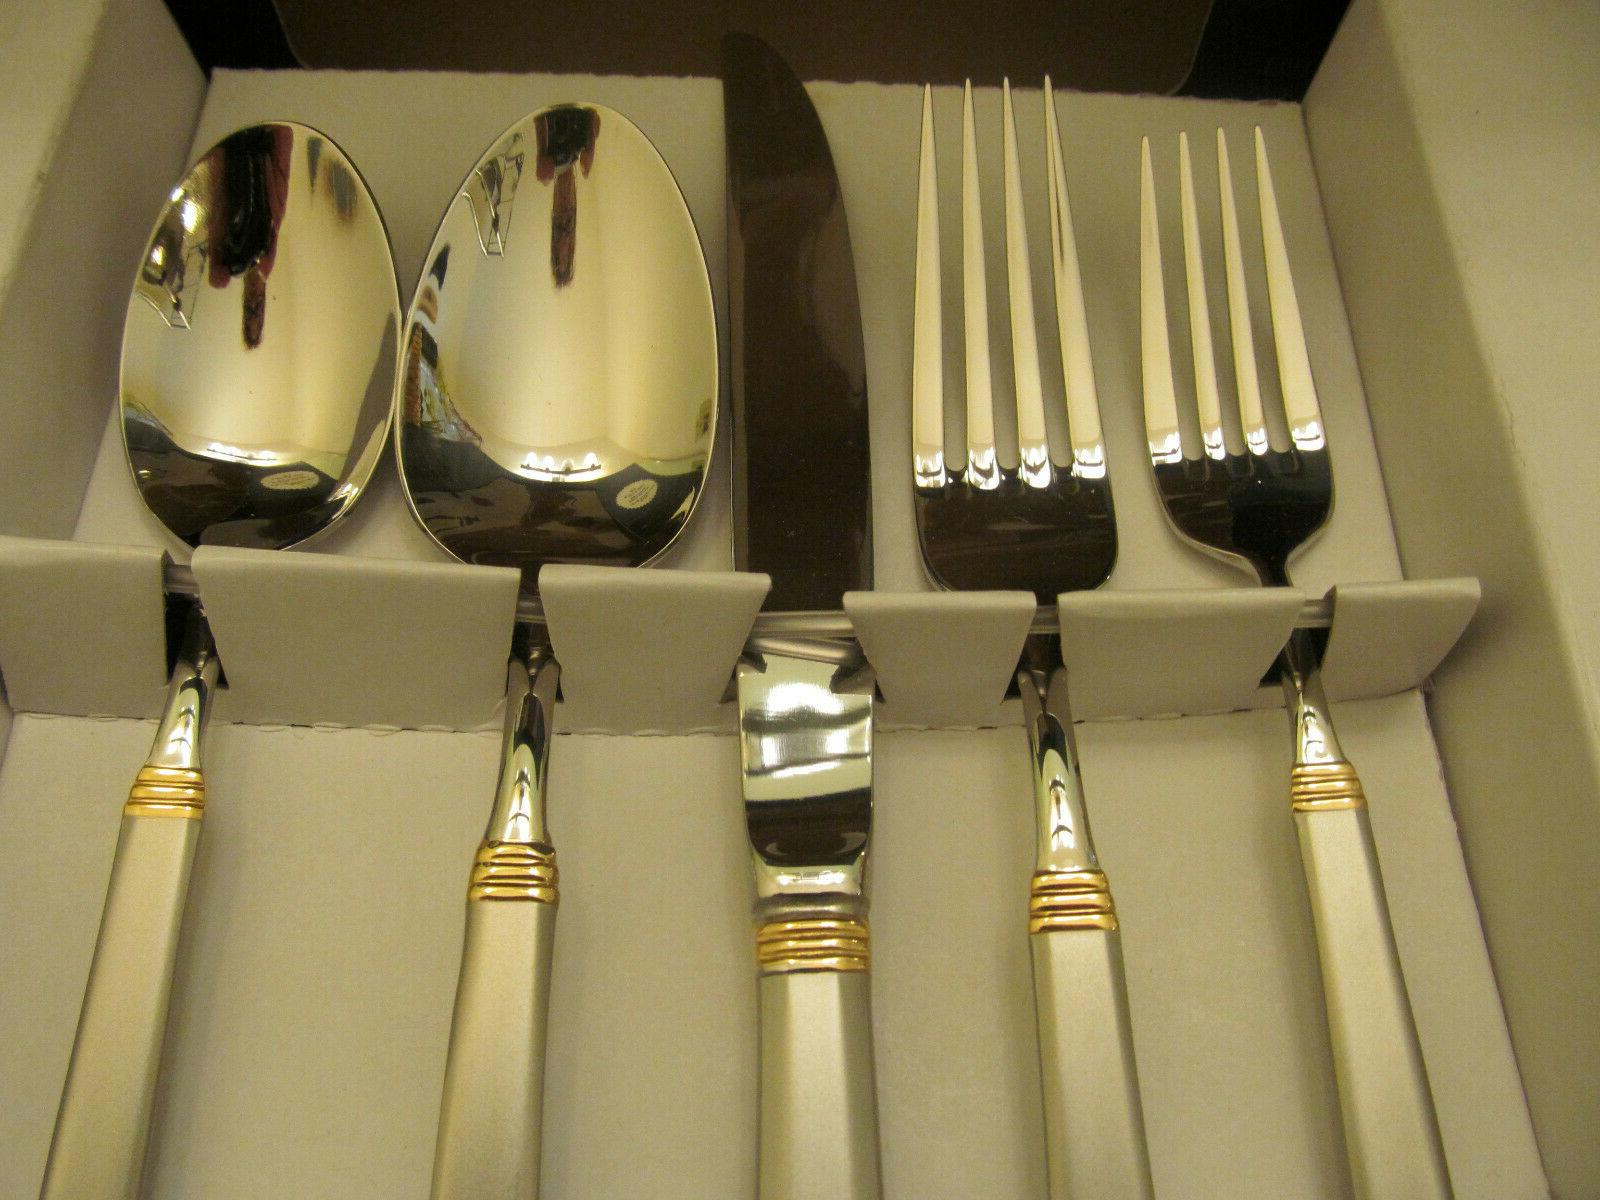 WMF PIECE CARAT ACCENT 18/8 STAINLESS